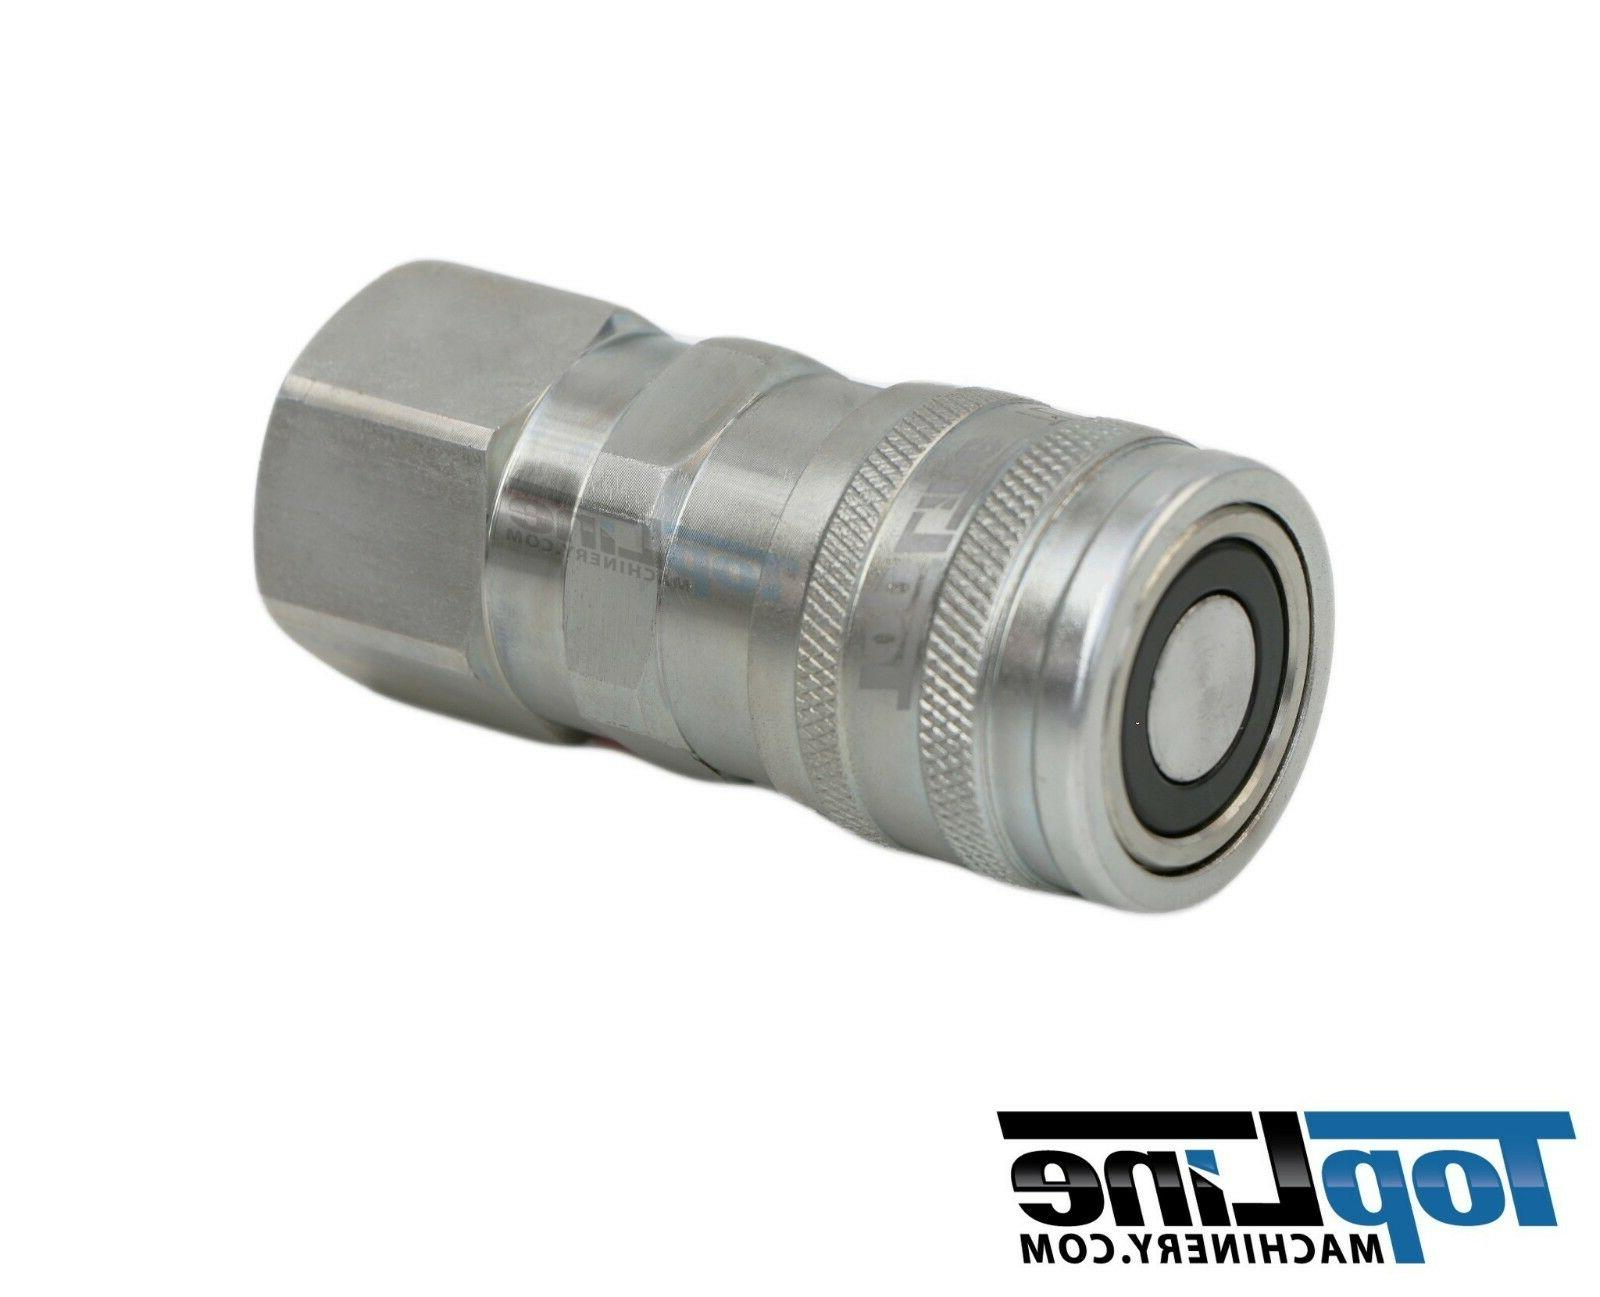 TL21-F 1/2 Female Face Hydraulic Plug